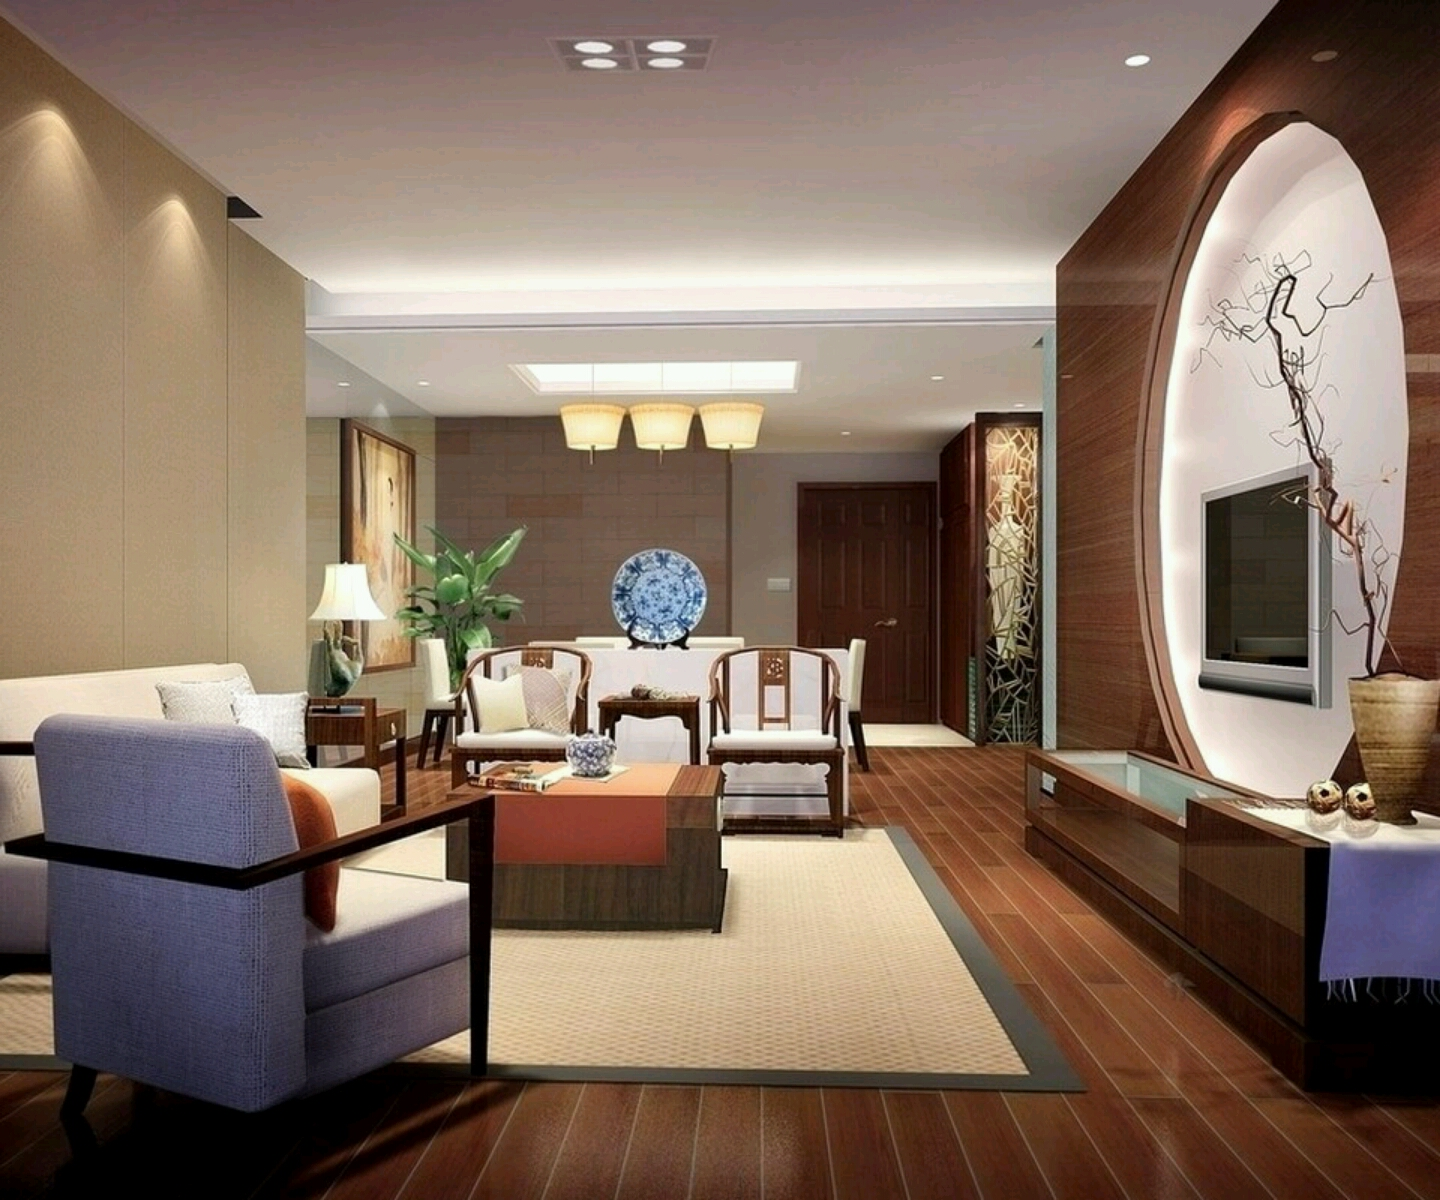 Luxury homes interior decoration living room designs ideas for New living room design ideas